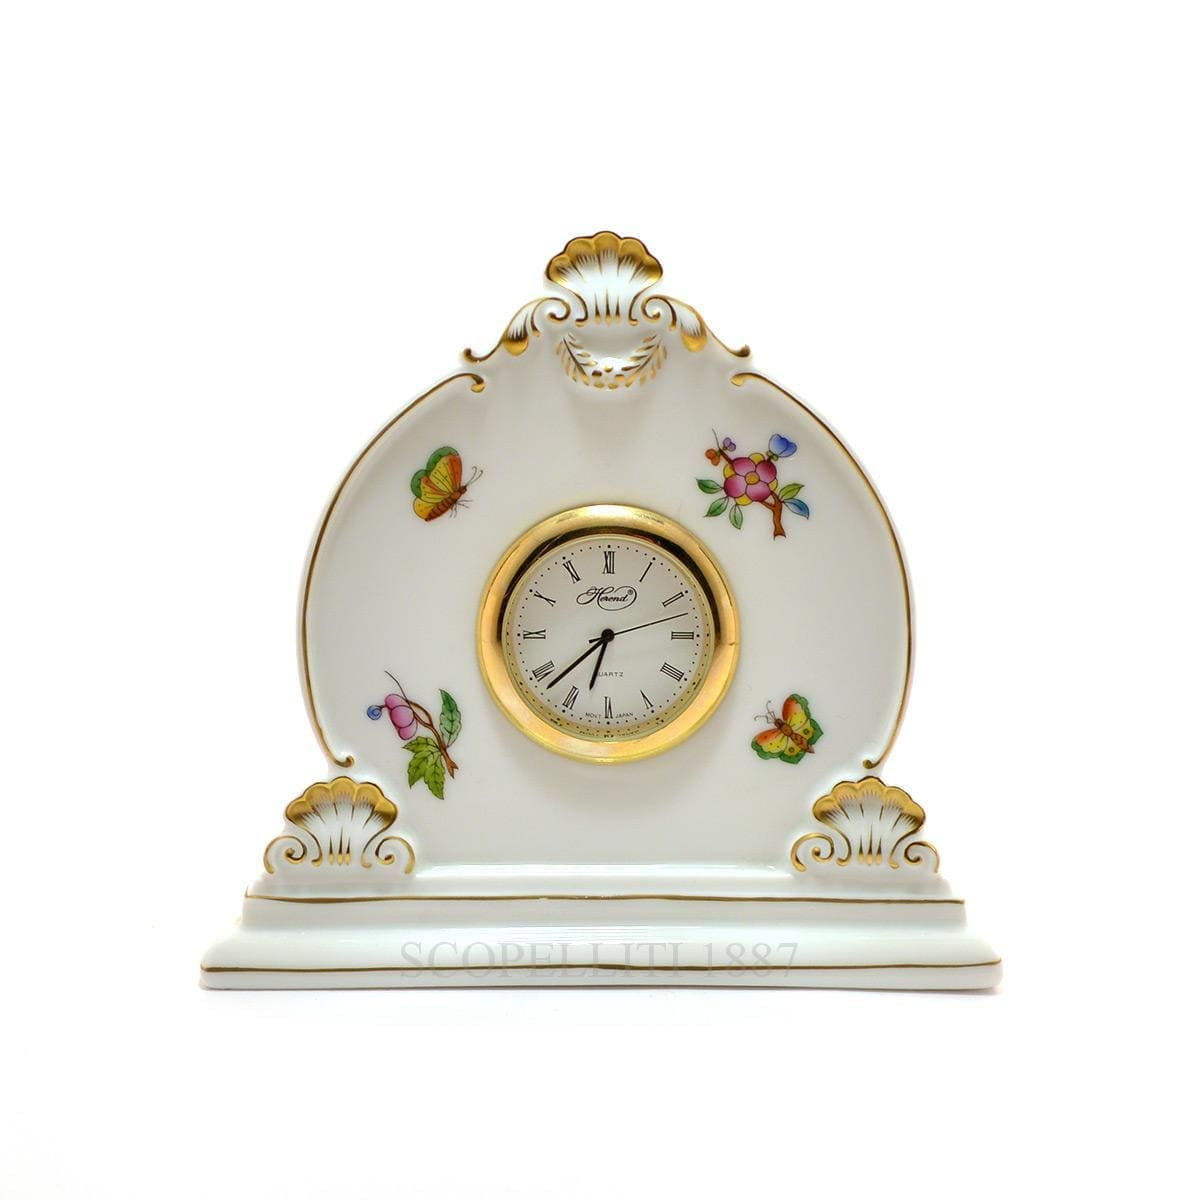 herend porcelain queen victoria table clock